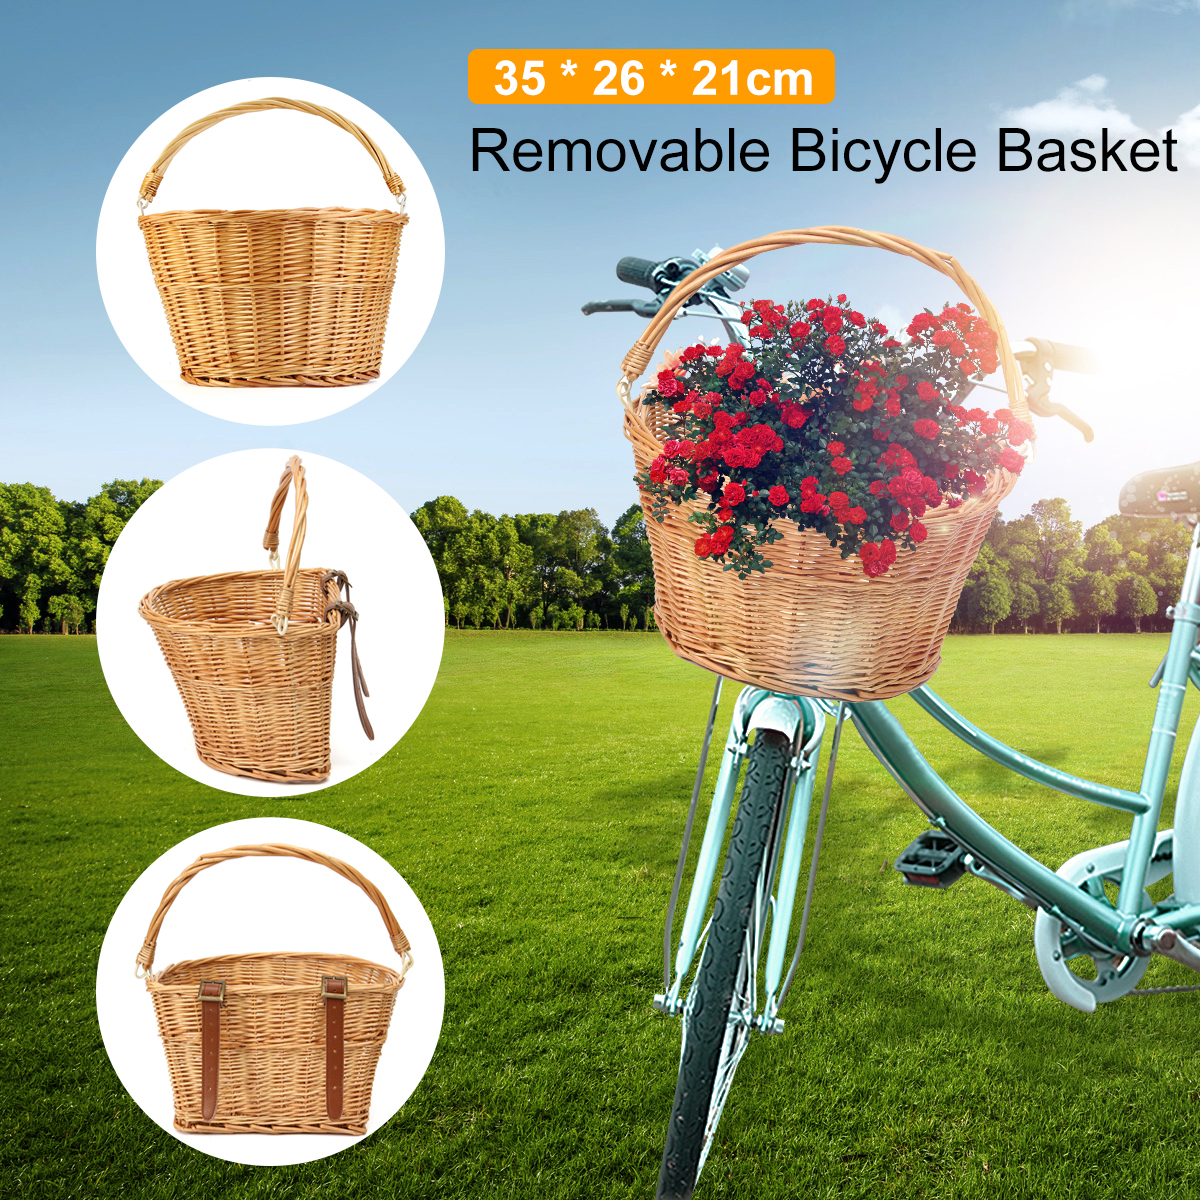 New Arrival Vintage Wicker Bike Bicycle Front Basket Shopping Box Handlebar Leather Straps High Quality Outdoor Sports Accessory